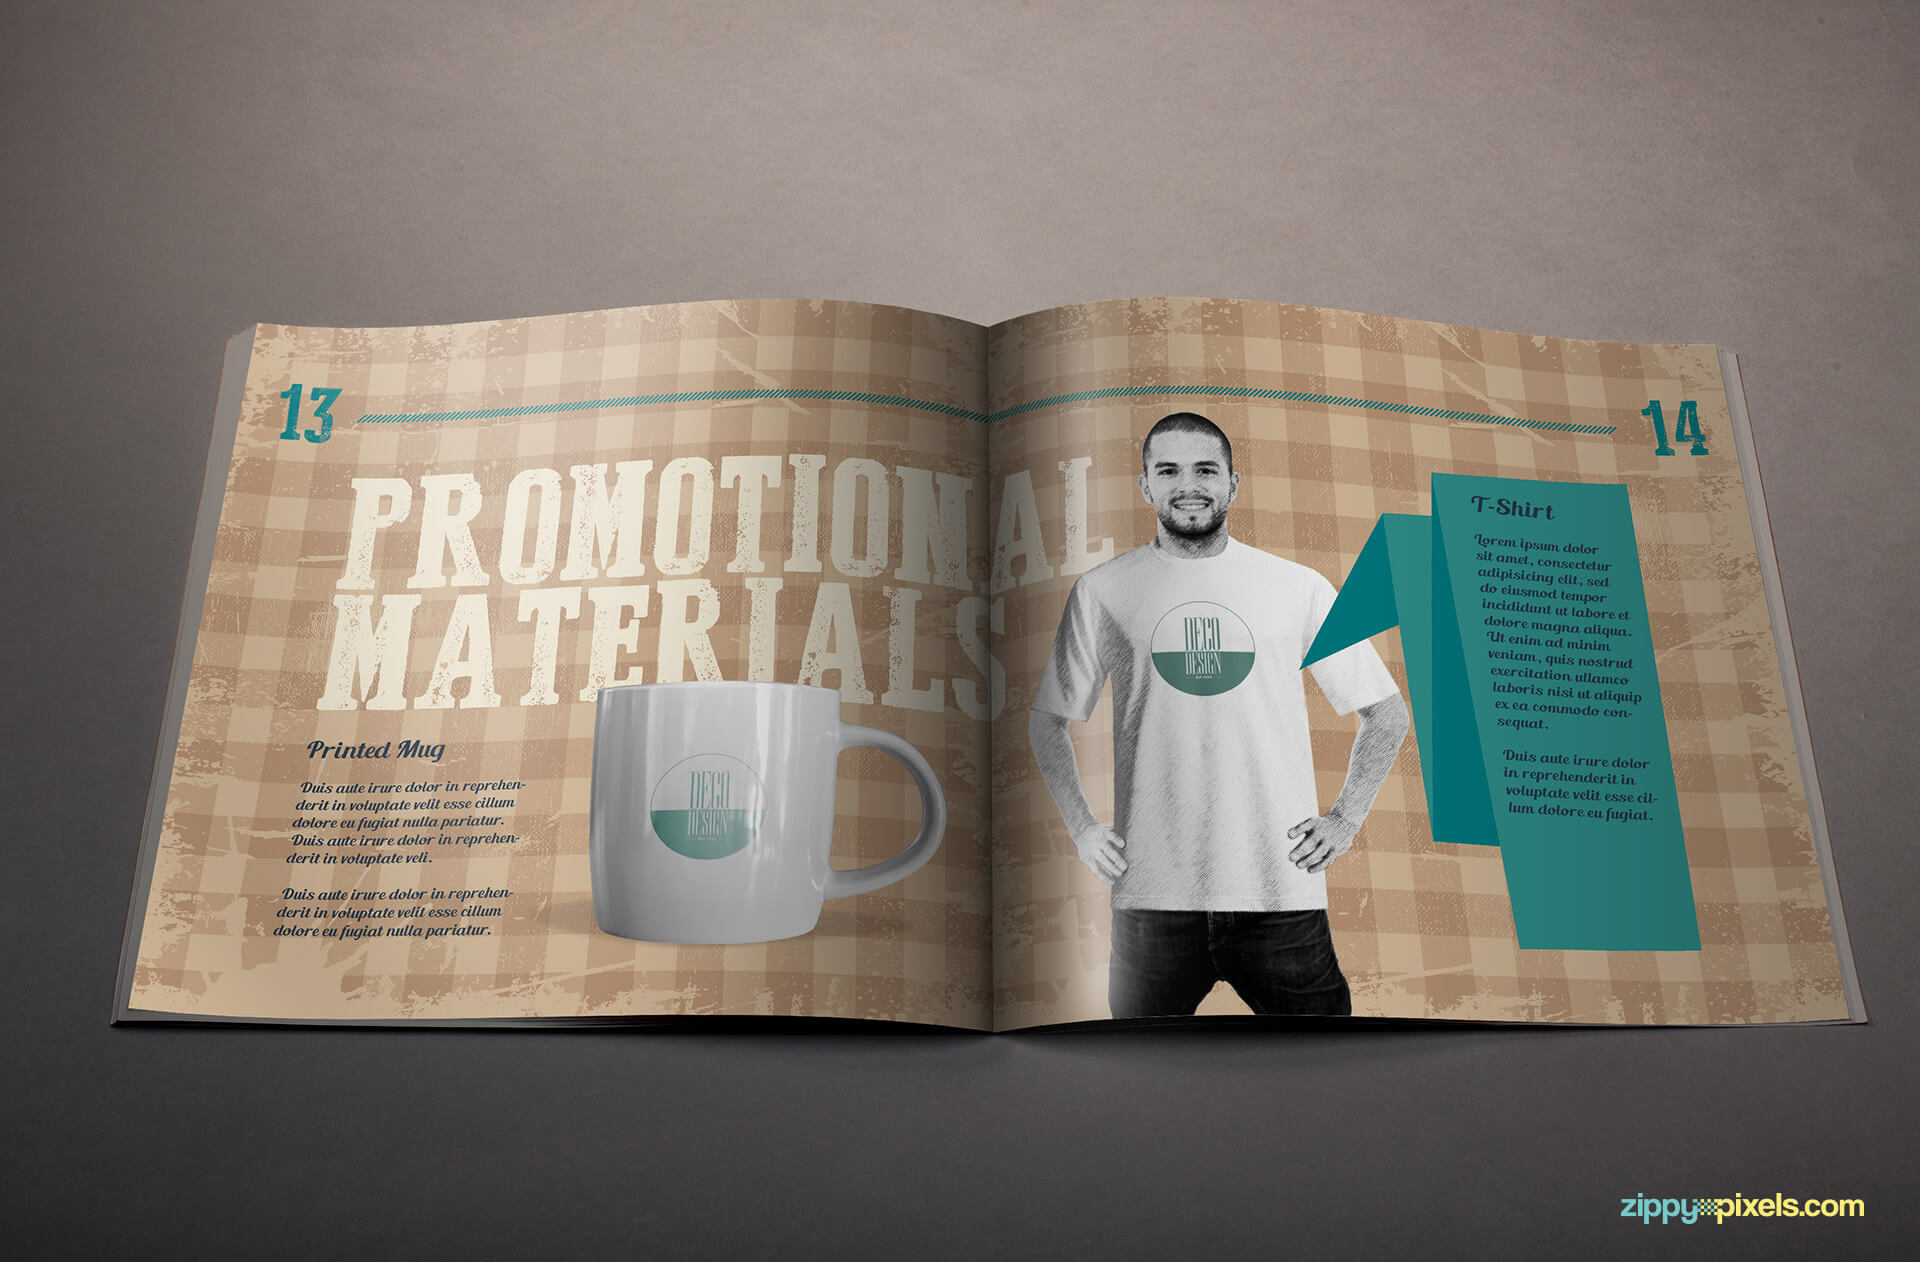 13-brand-book-13-promotional-materials-printed-mug-t-shirt